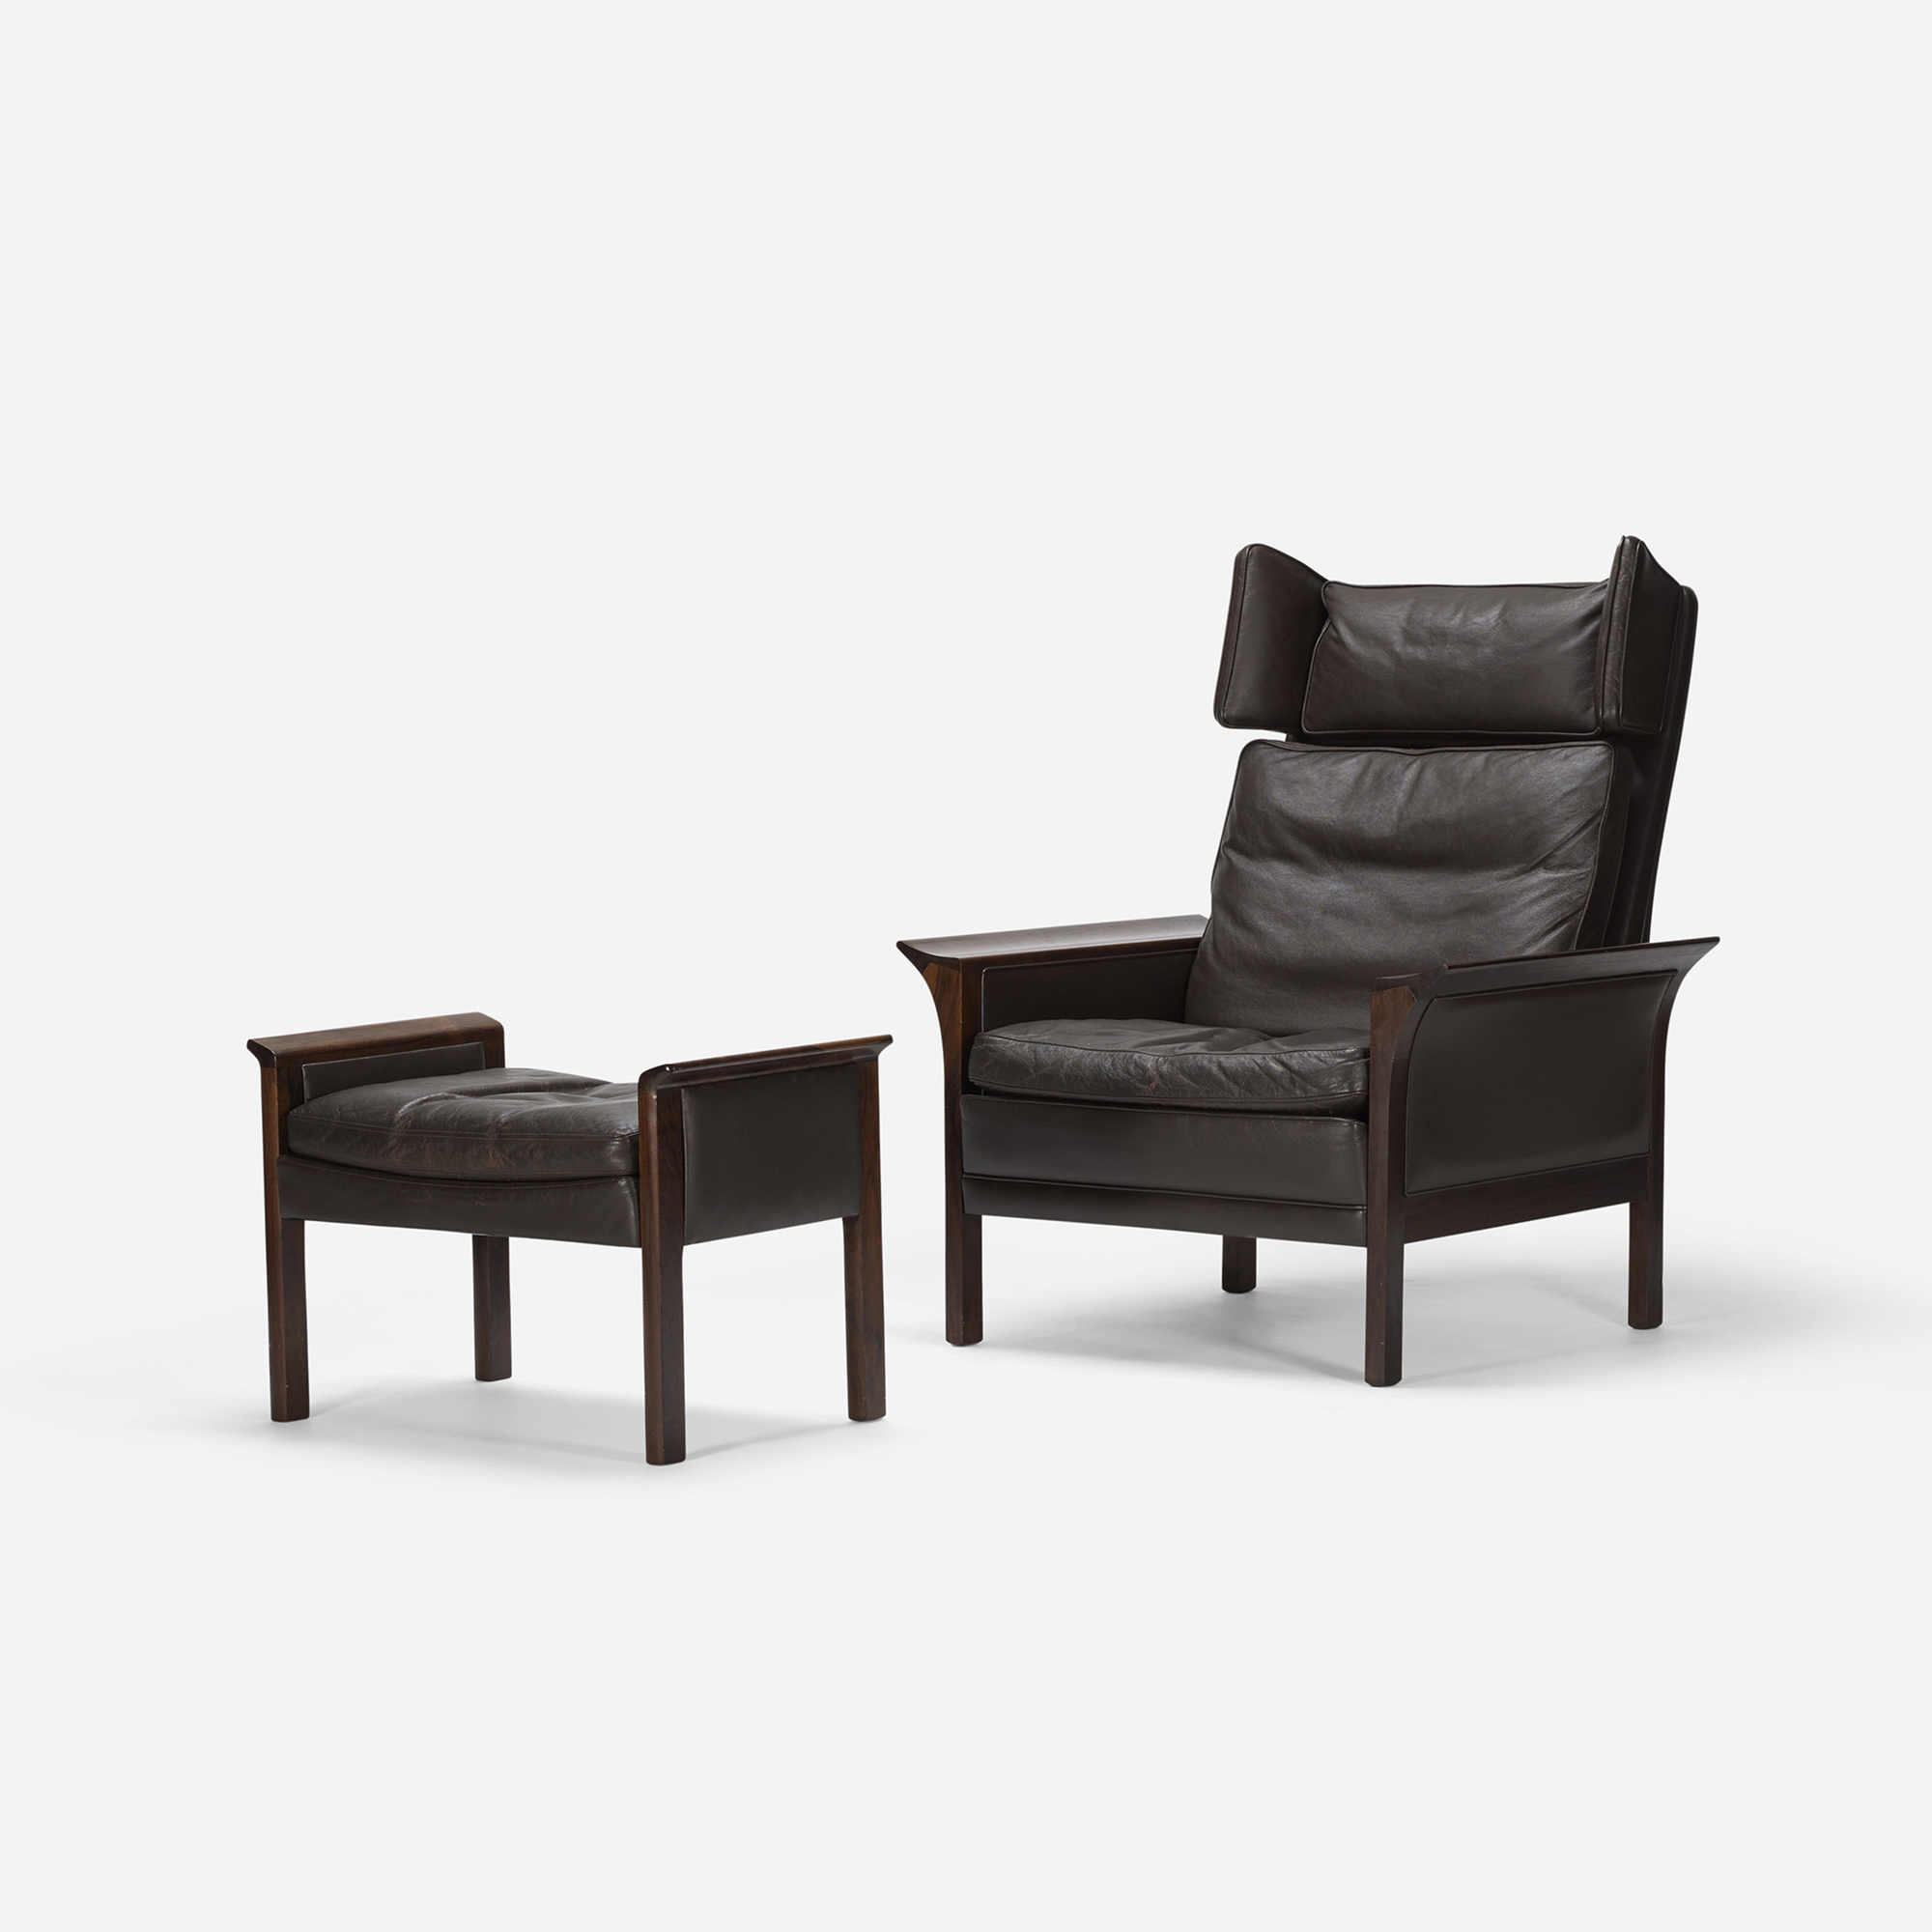 644: Hans Olsen / lounge chair and ottoman, model 500 H (1 of 5)